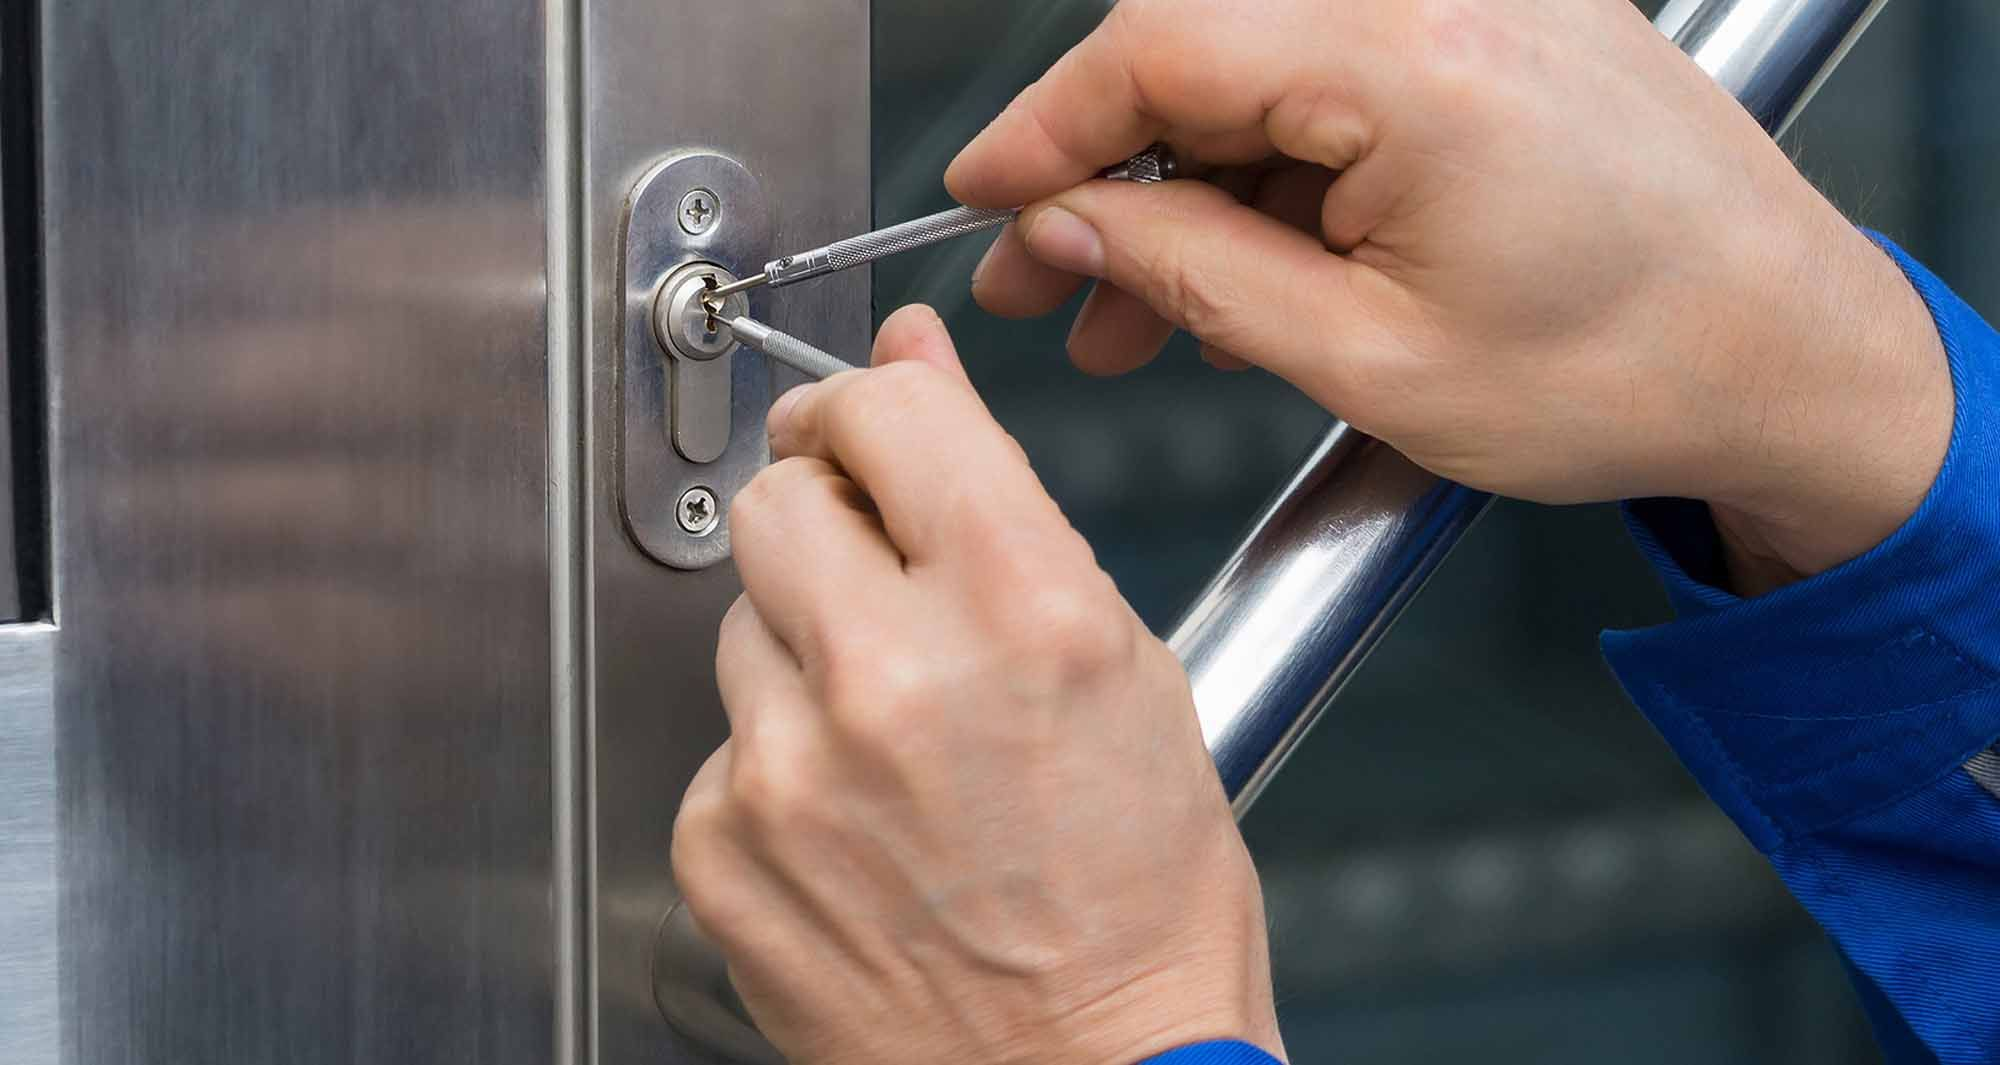 Get fast and secure 24/7 locksmith services in Tampa, Florida. Any Car Key Made offers reliable and affordable Automotive, Residential, Emergency, Commercial and Mobile locksmith or lockout service in local Tampa Bay area and across the Hillsborough County. Feel free call us anytime at (813) 502-1624